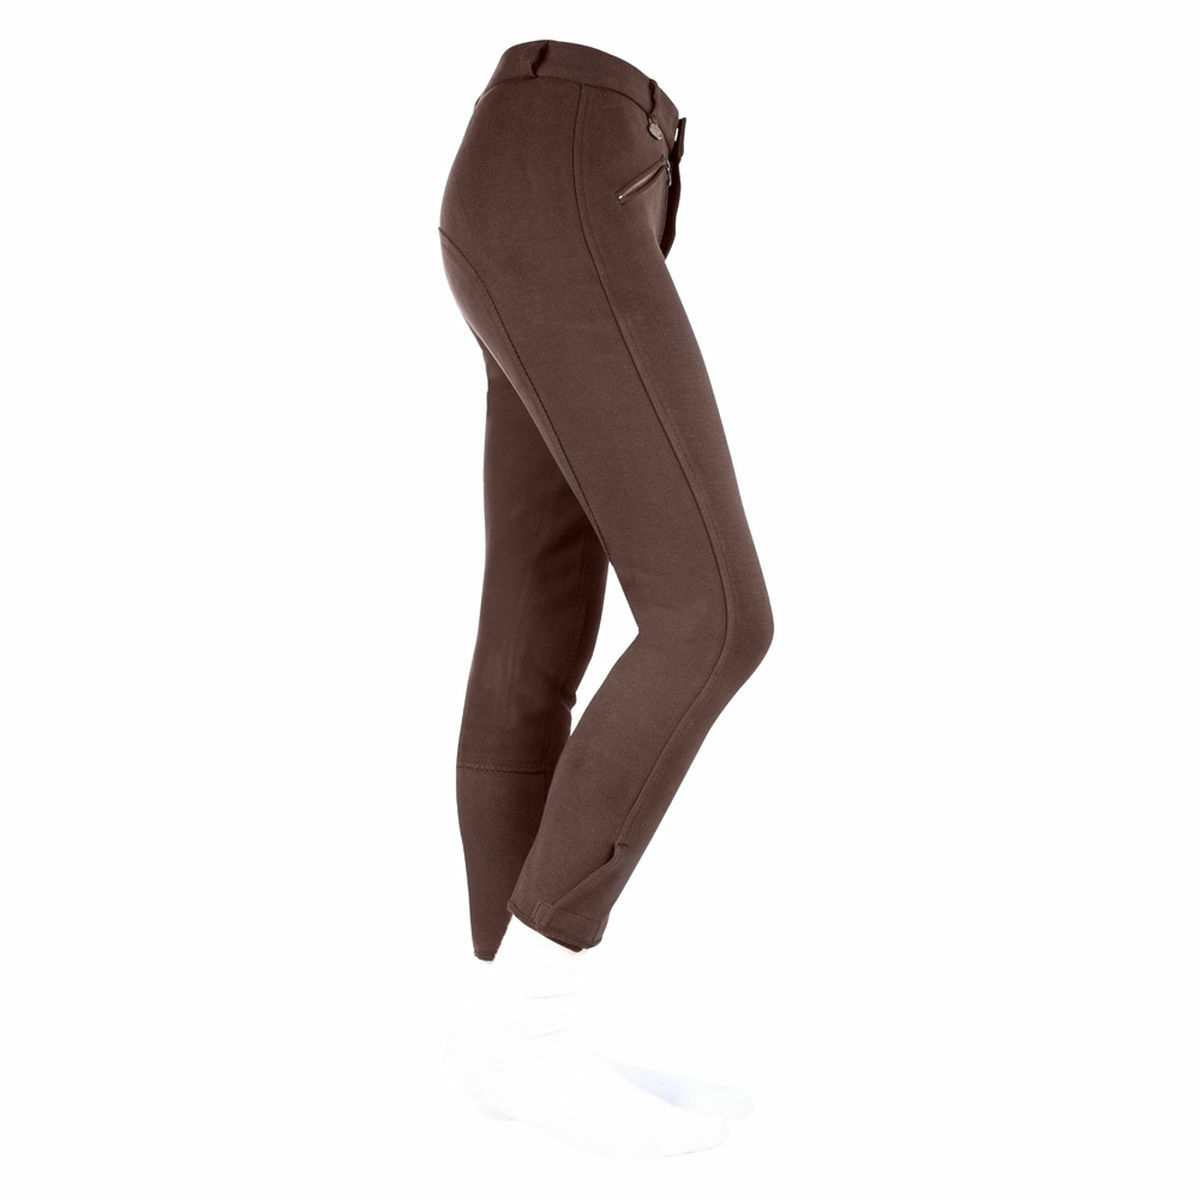 Childs Hunt Kids HORZE Active Full Seat English Hunt Childs Seat Riding Show Breeches Pants 3c2965